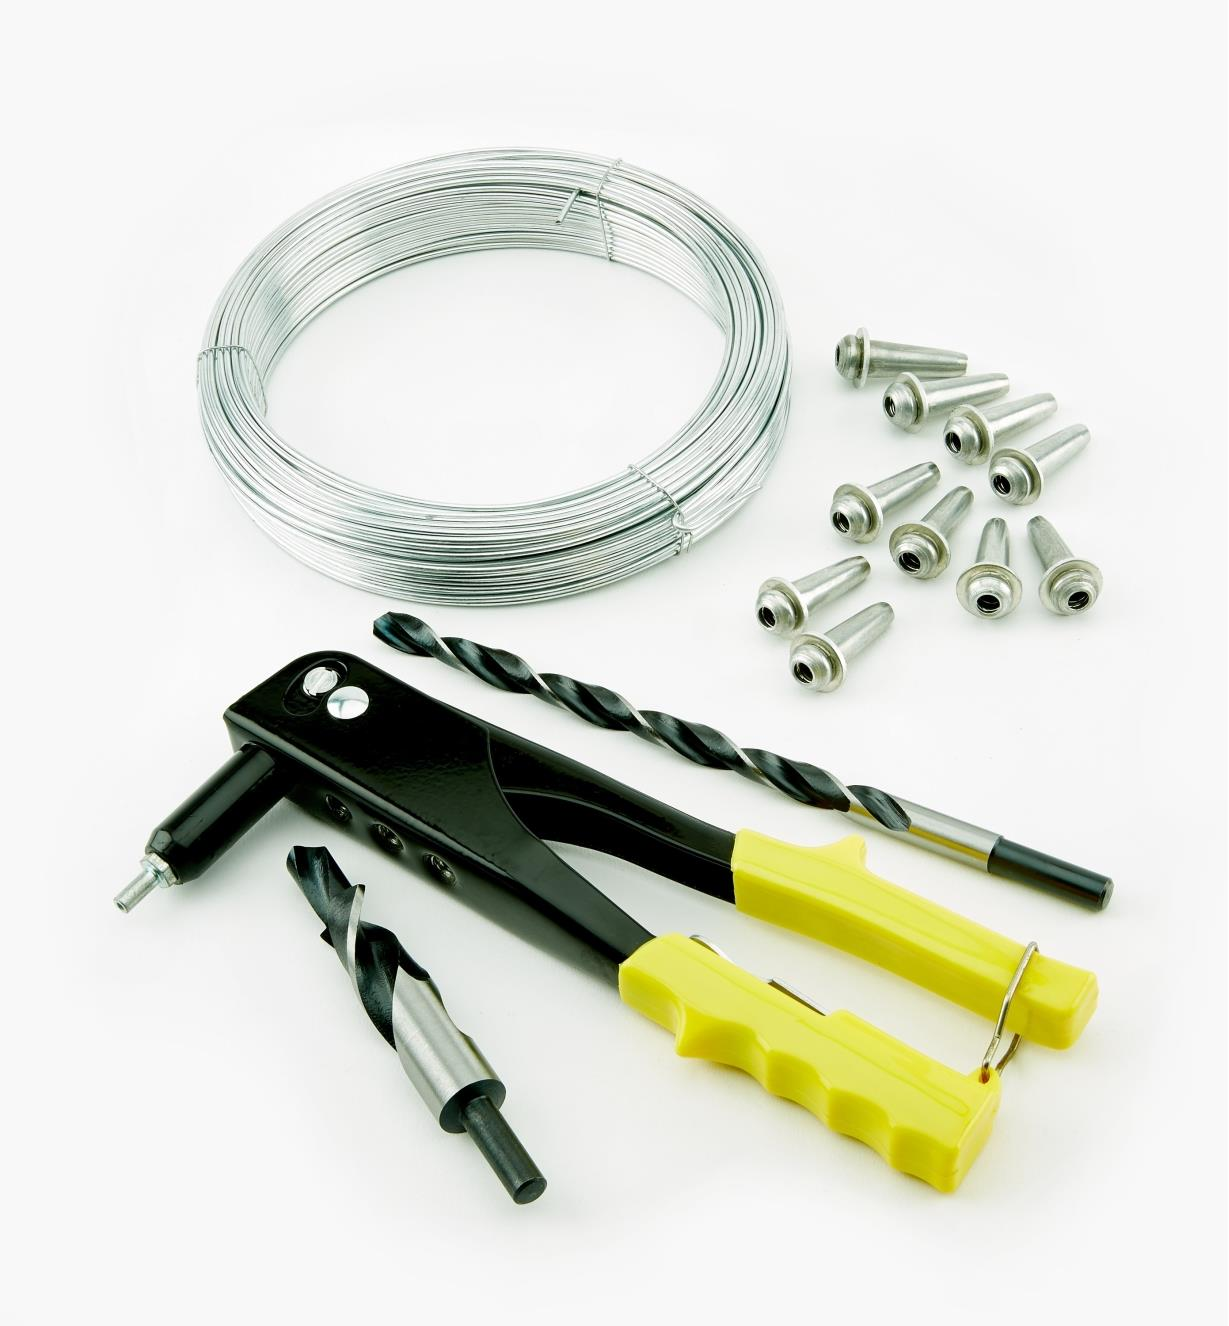 09A0810 - Wire Tensioning Kit